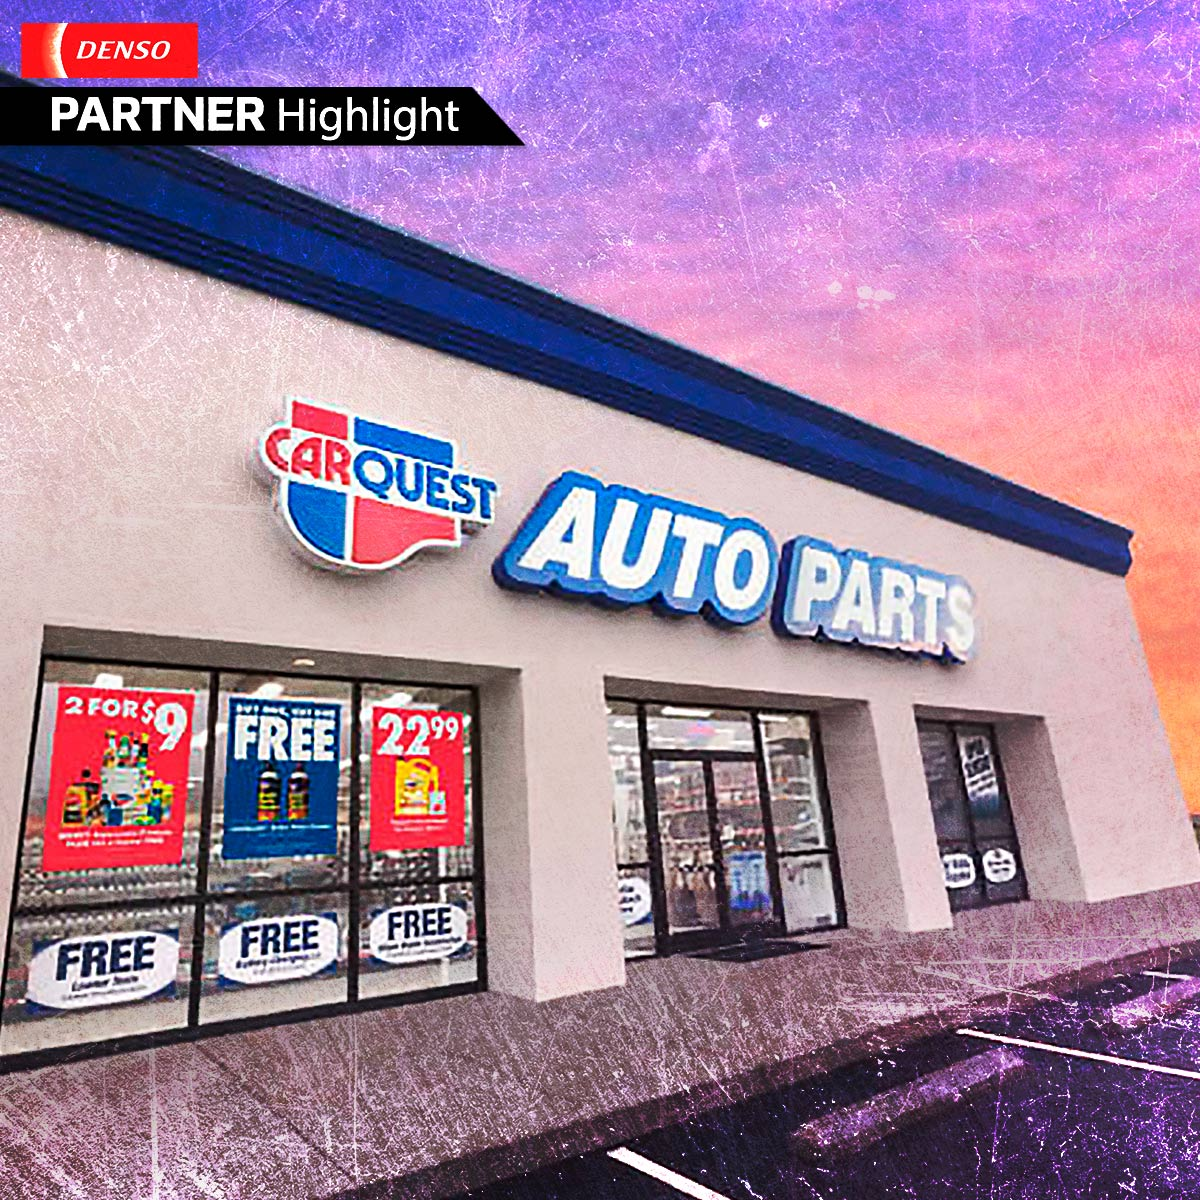 Carquest Auto Parts Near Me >> Denso Auto Parts On Twitter Partner Highlight Carquest